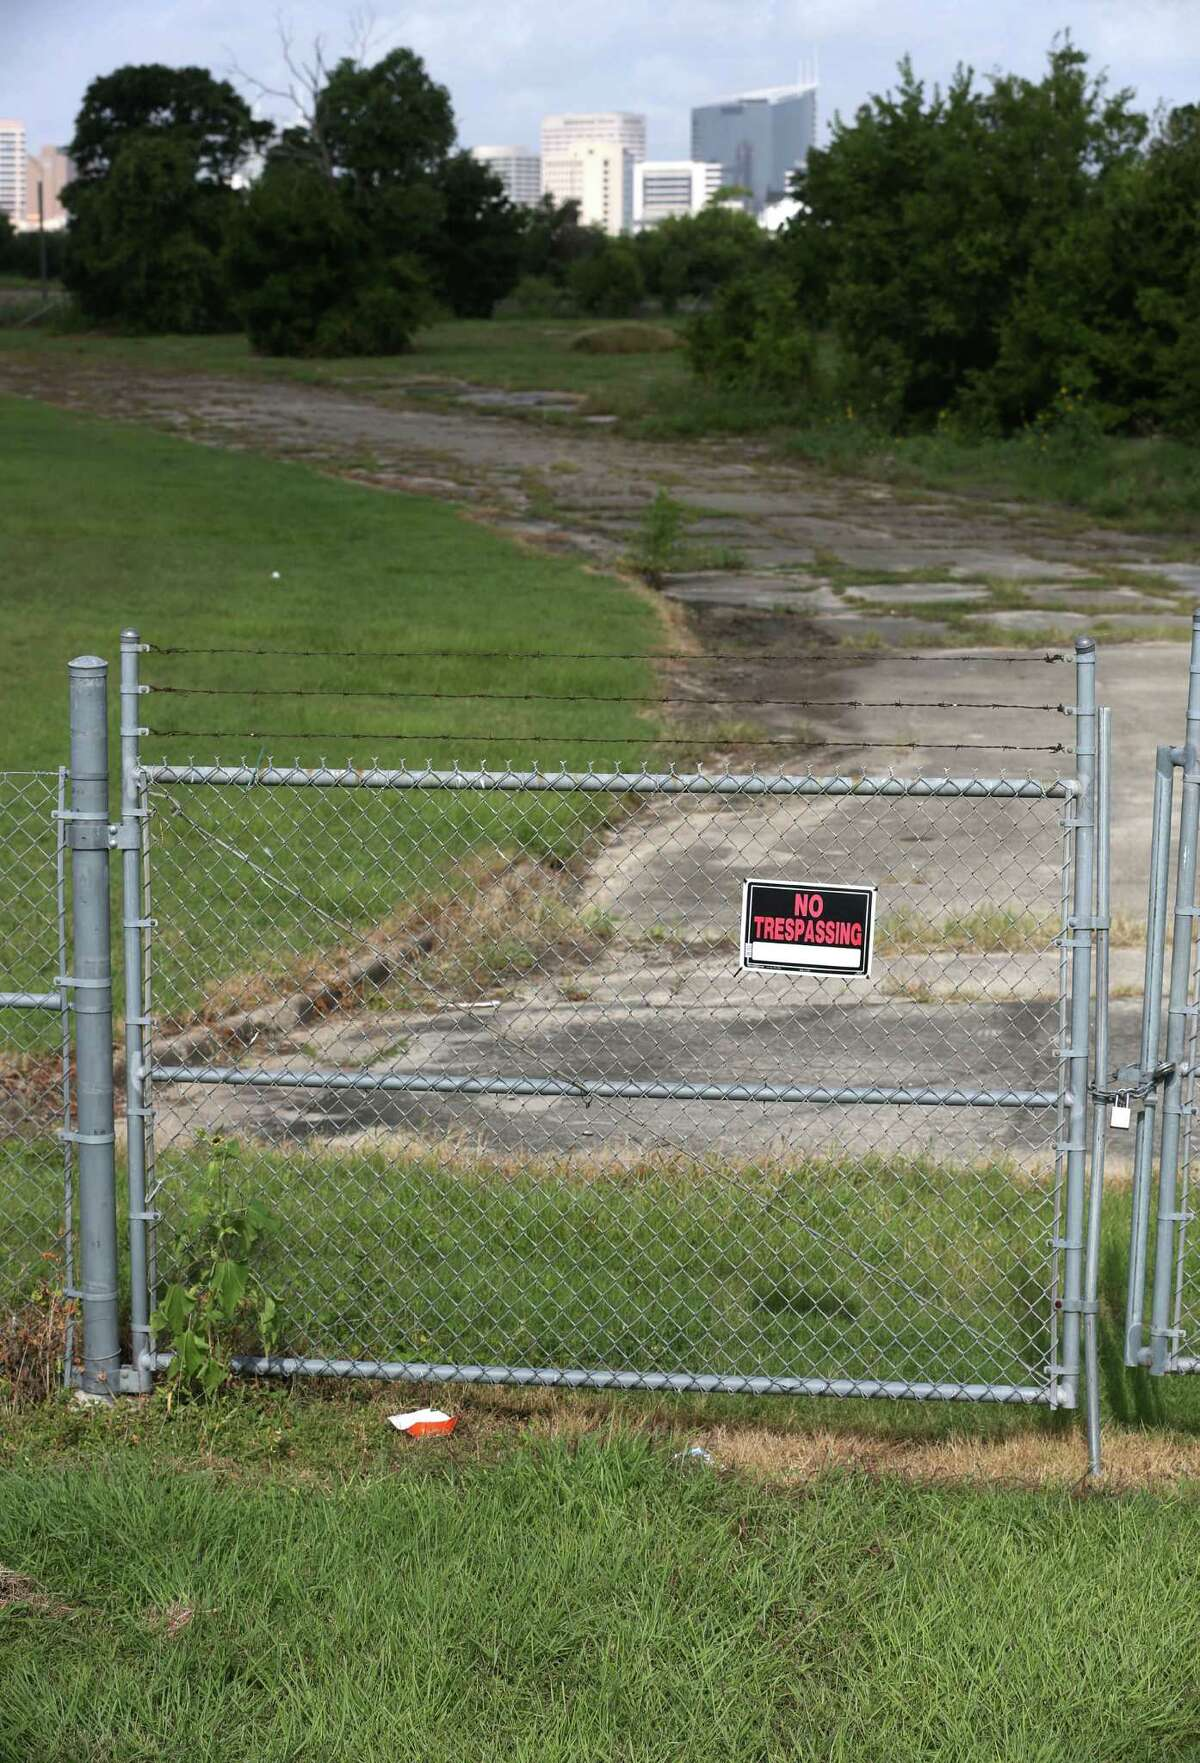 2. Houston Community College - Allegations of misspent money on unused property, improprieties involving contract decisions andother issues plagued HCC's board of trustees. A vacant lot shown near Texas 288 and North MacGregor Way bought, sold and bought again by Houston Community College.